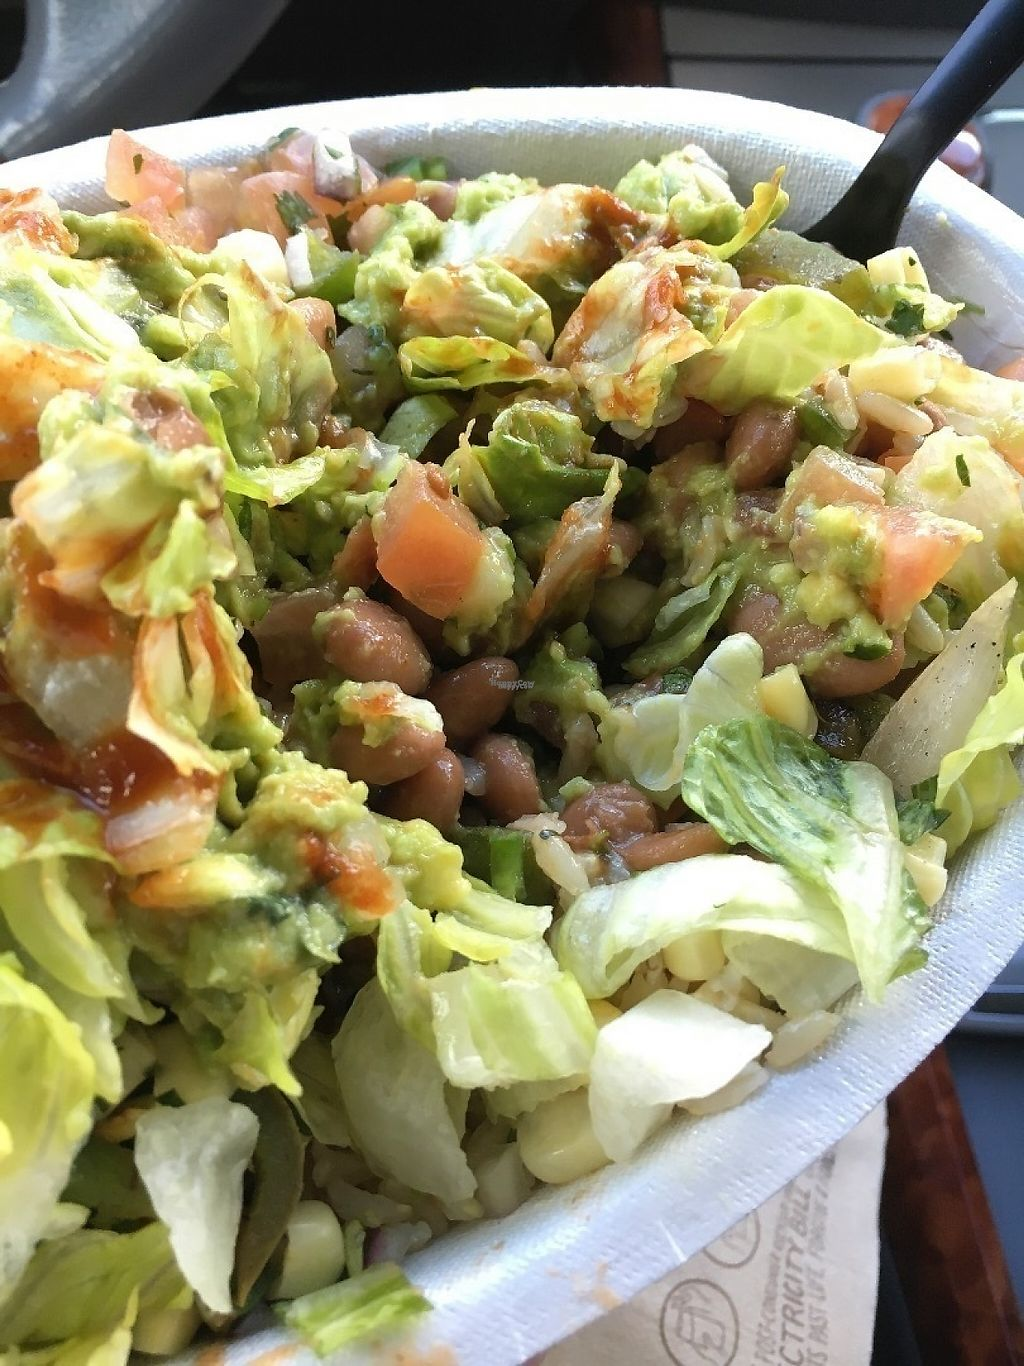 """Photo of Chipotle  by <a href=""""/members/profile/KWdaddio"""">KWdaddio</a> <br/>Veggie Bowl <br/> December 30, 2016  - <a href='/contact/abuse/image/84670/206068'>Report</a>"""